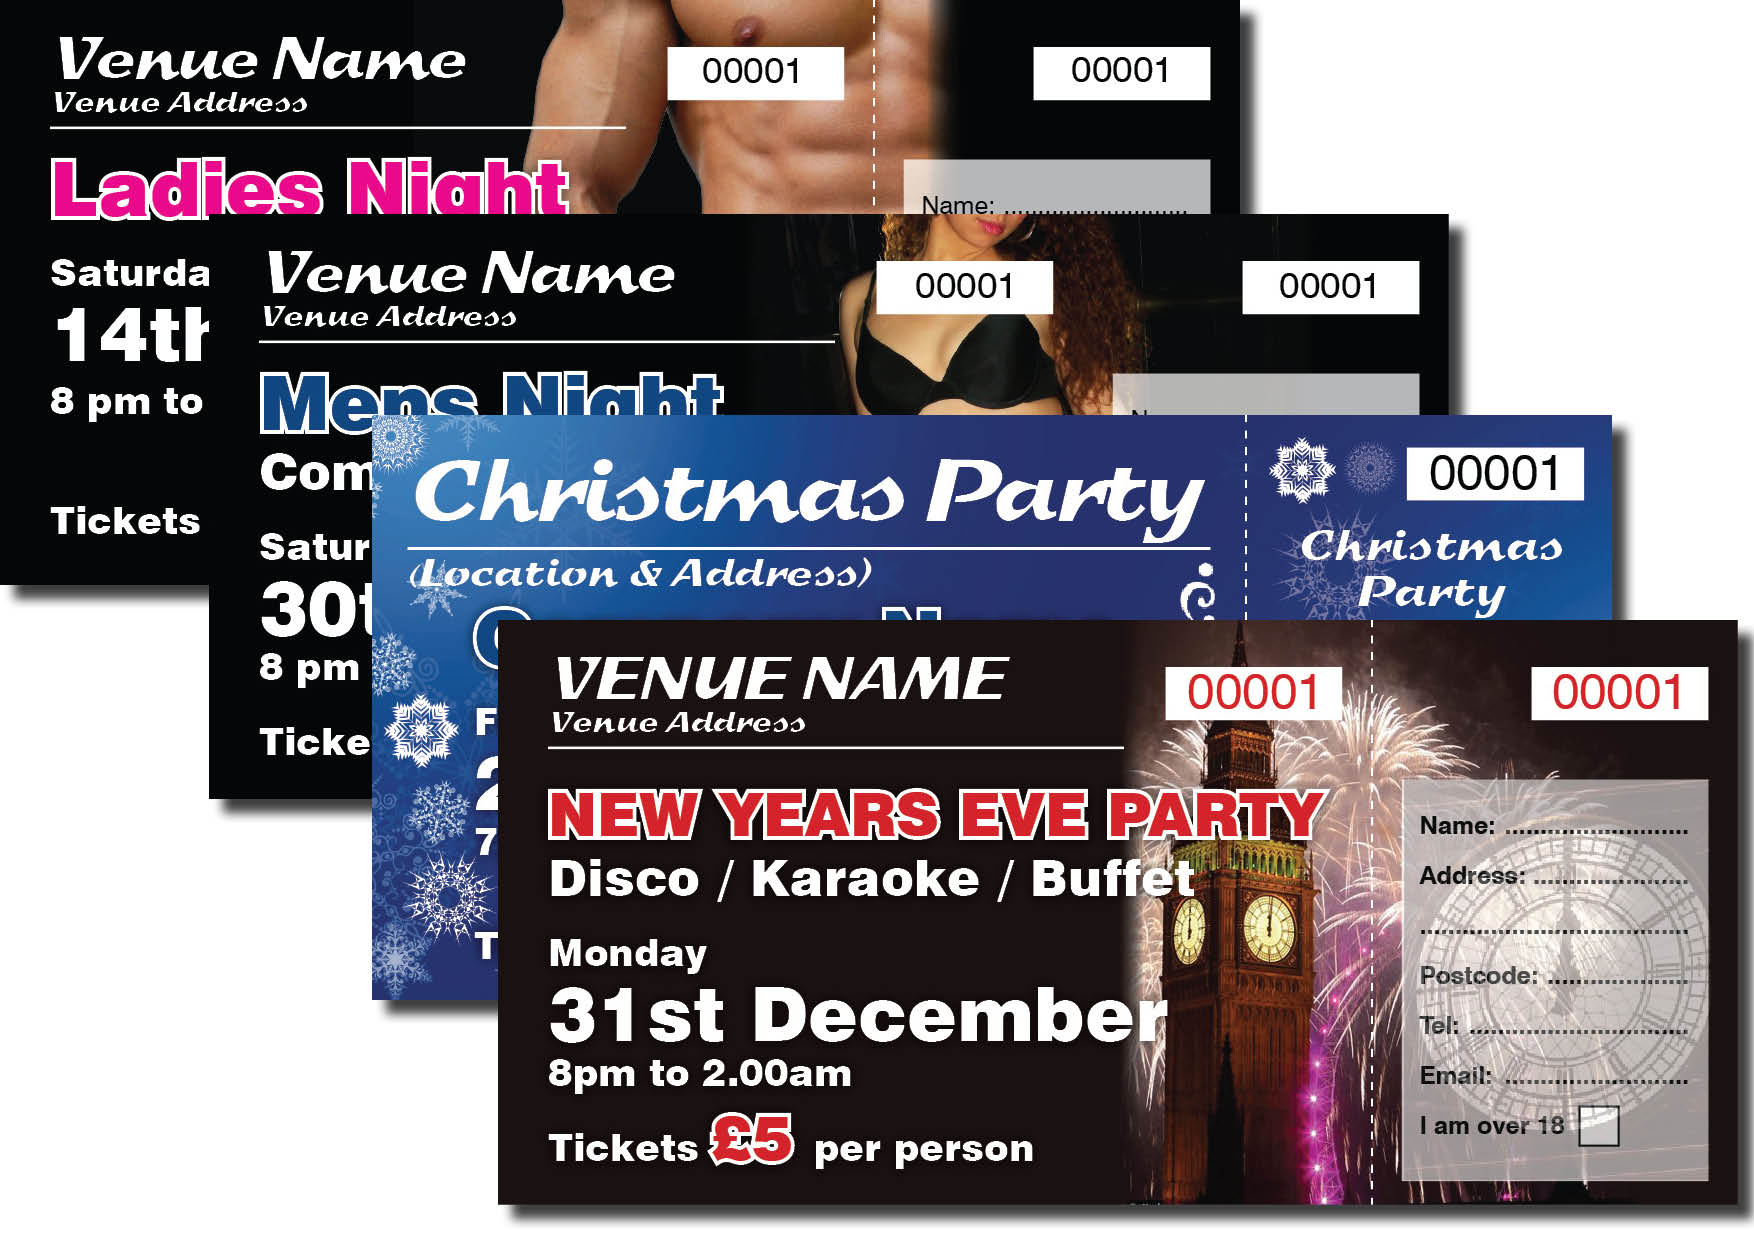 PERSONALISED EVENT TICKETS